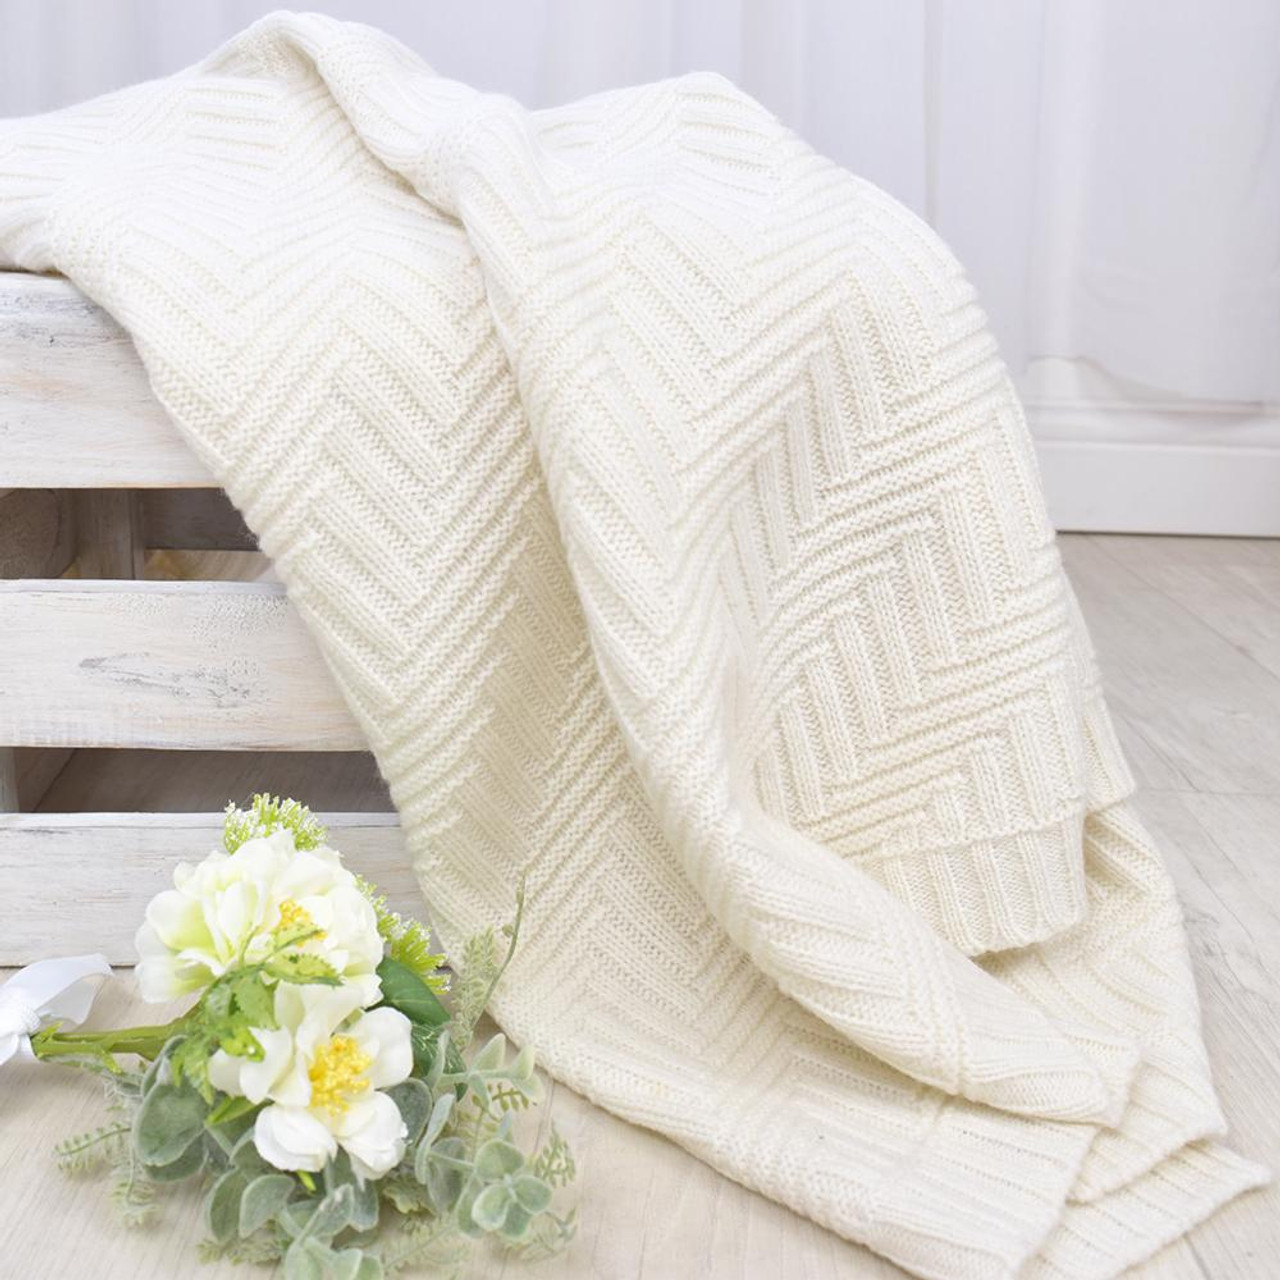 Living Textiles Merino Wool Pram Blanket at Baby Barn Discounts A luxurious addition to any nursery. Made from lush 100% Australian Merino wool, this lightweight blanket is perfectly sized for your pram or bassinet.